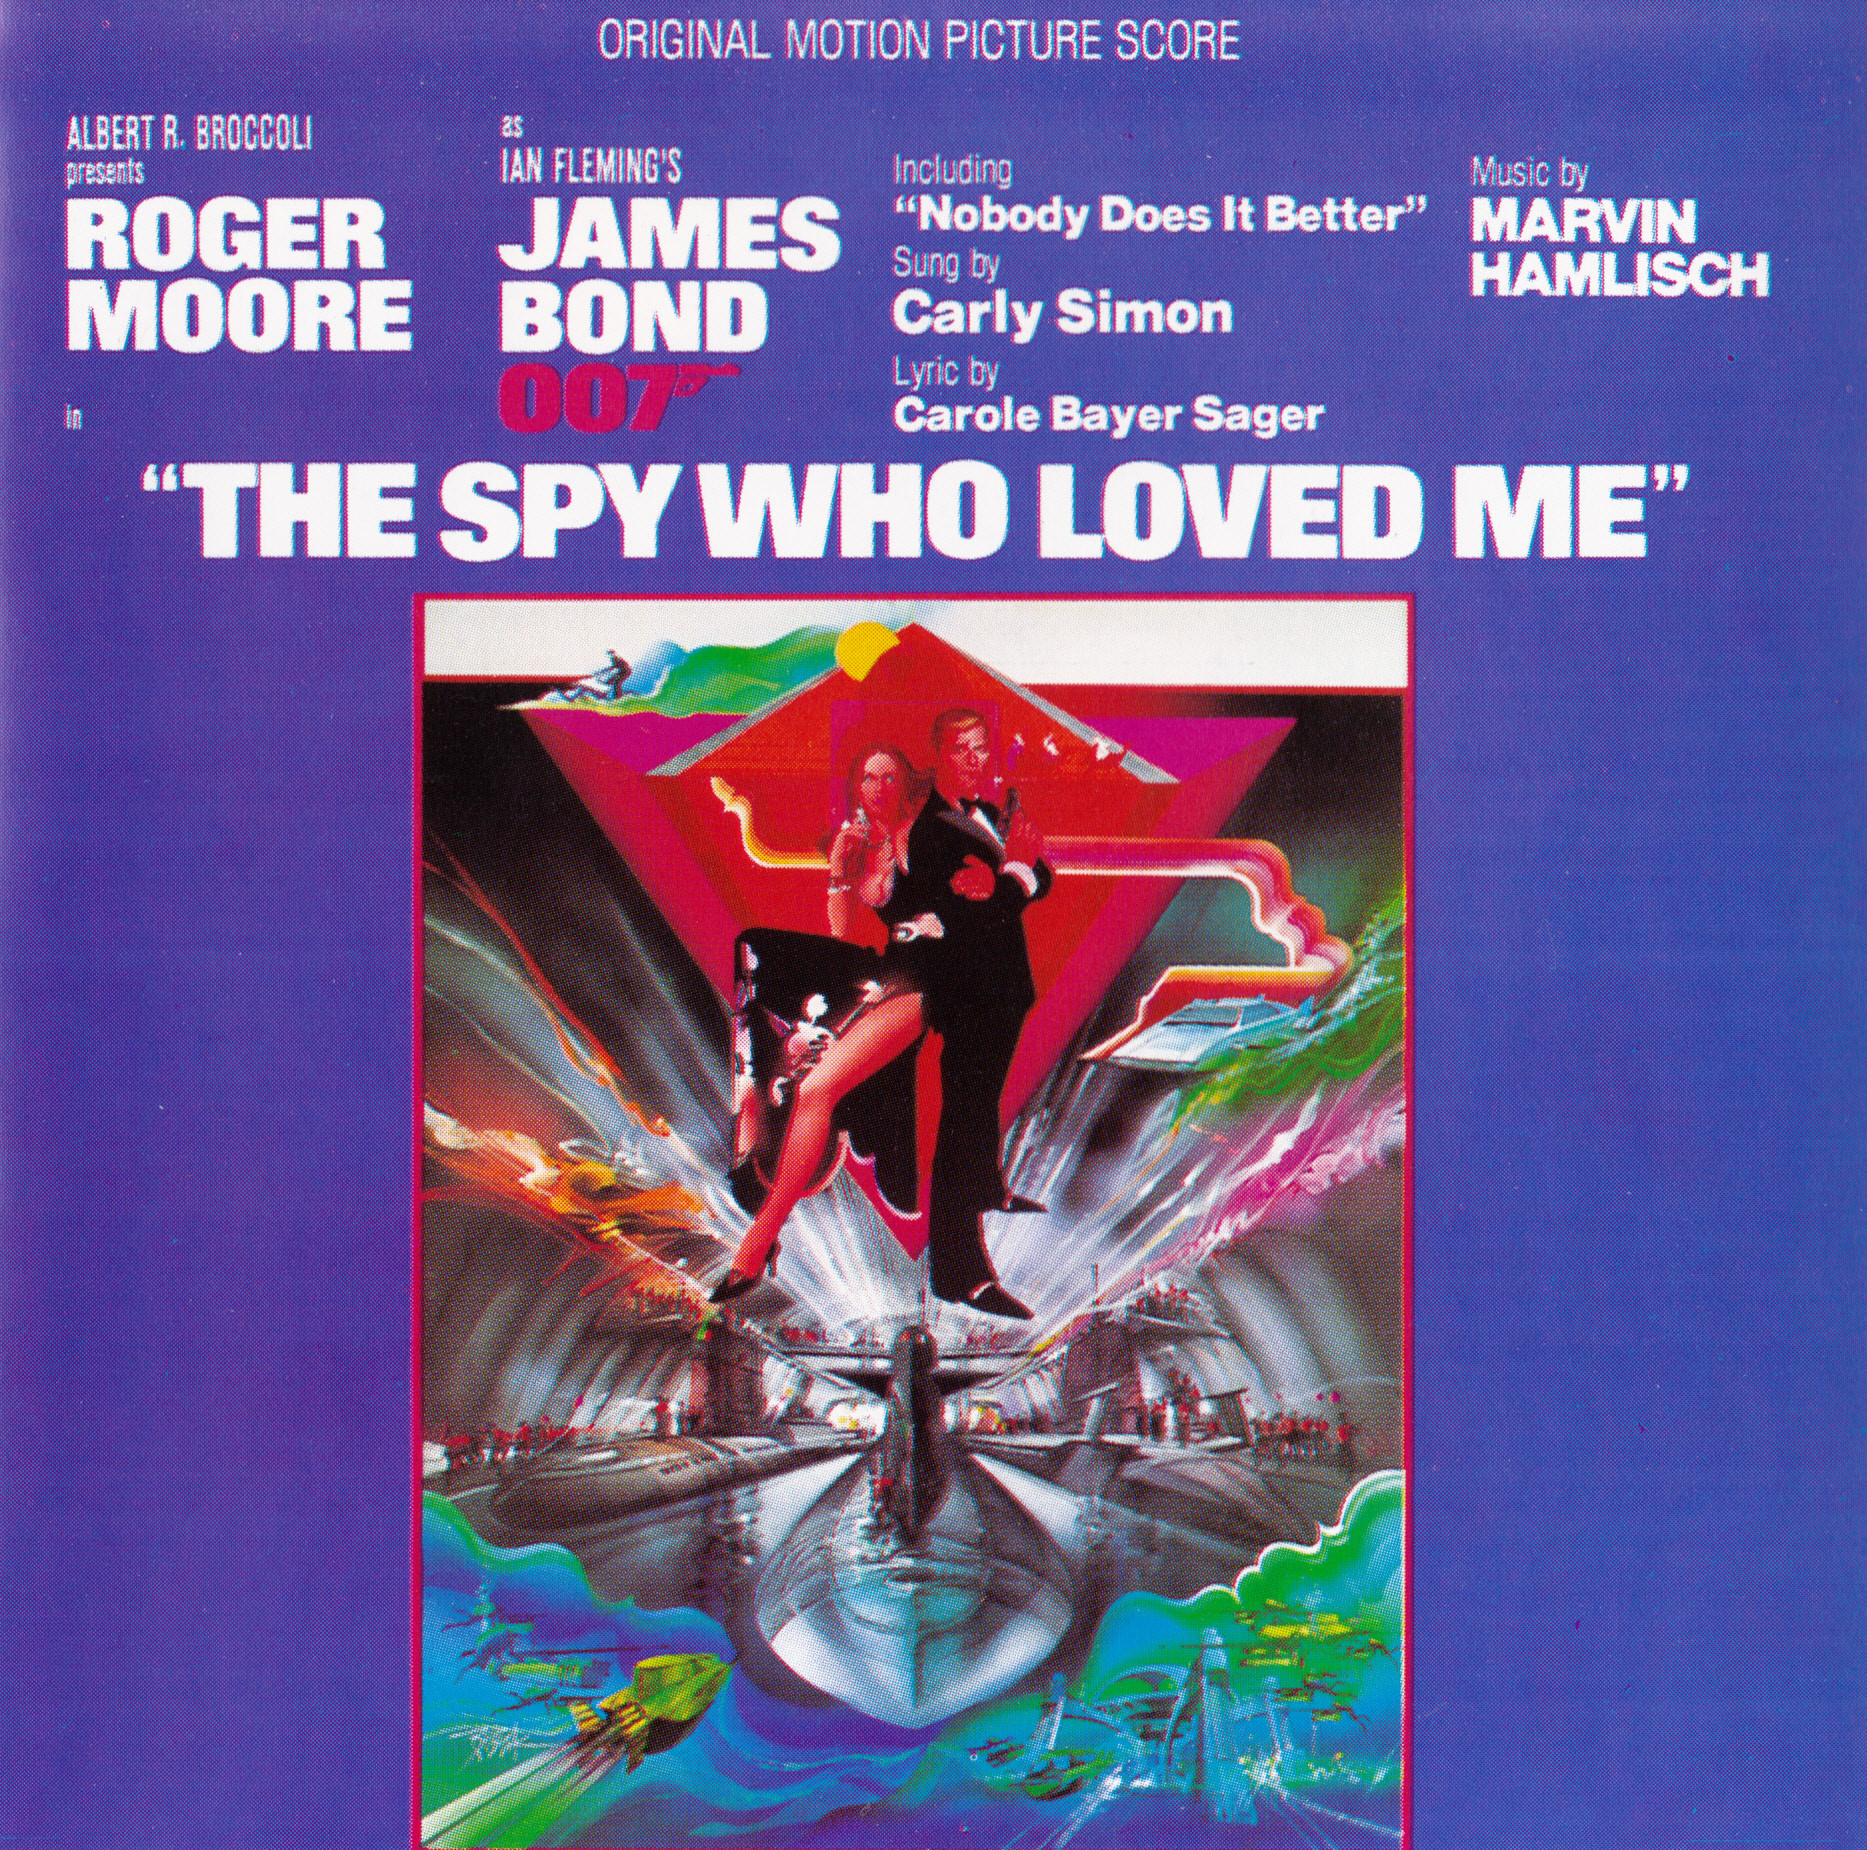 Film Music Site - The Spy Who Loved Me Soundtrack (Marvin ...The Spy Who Loved Me Soundtrack